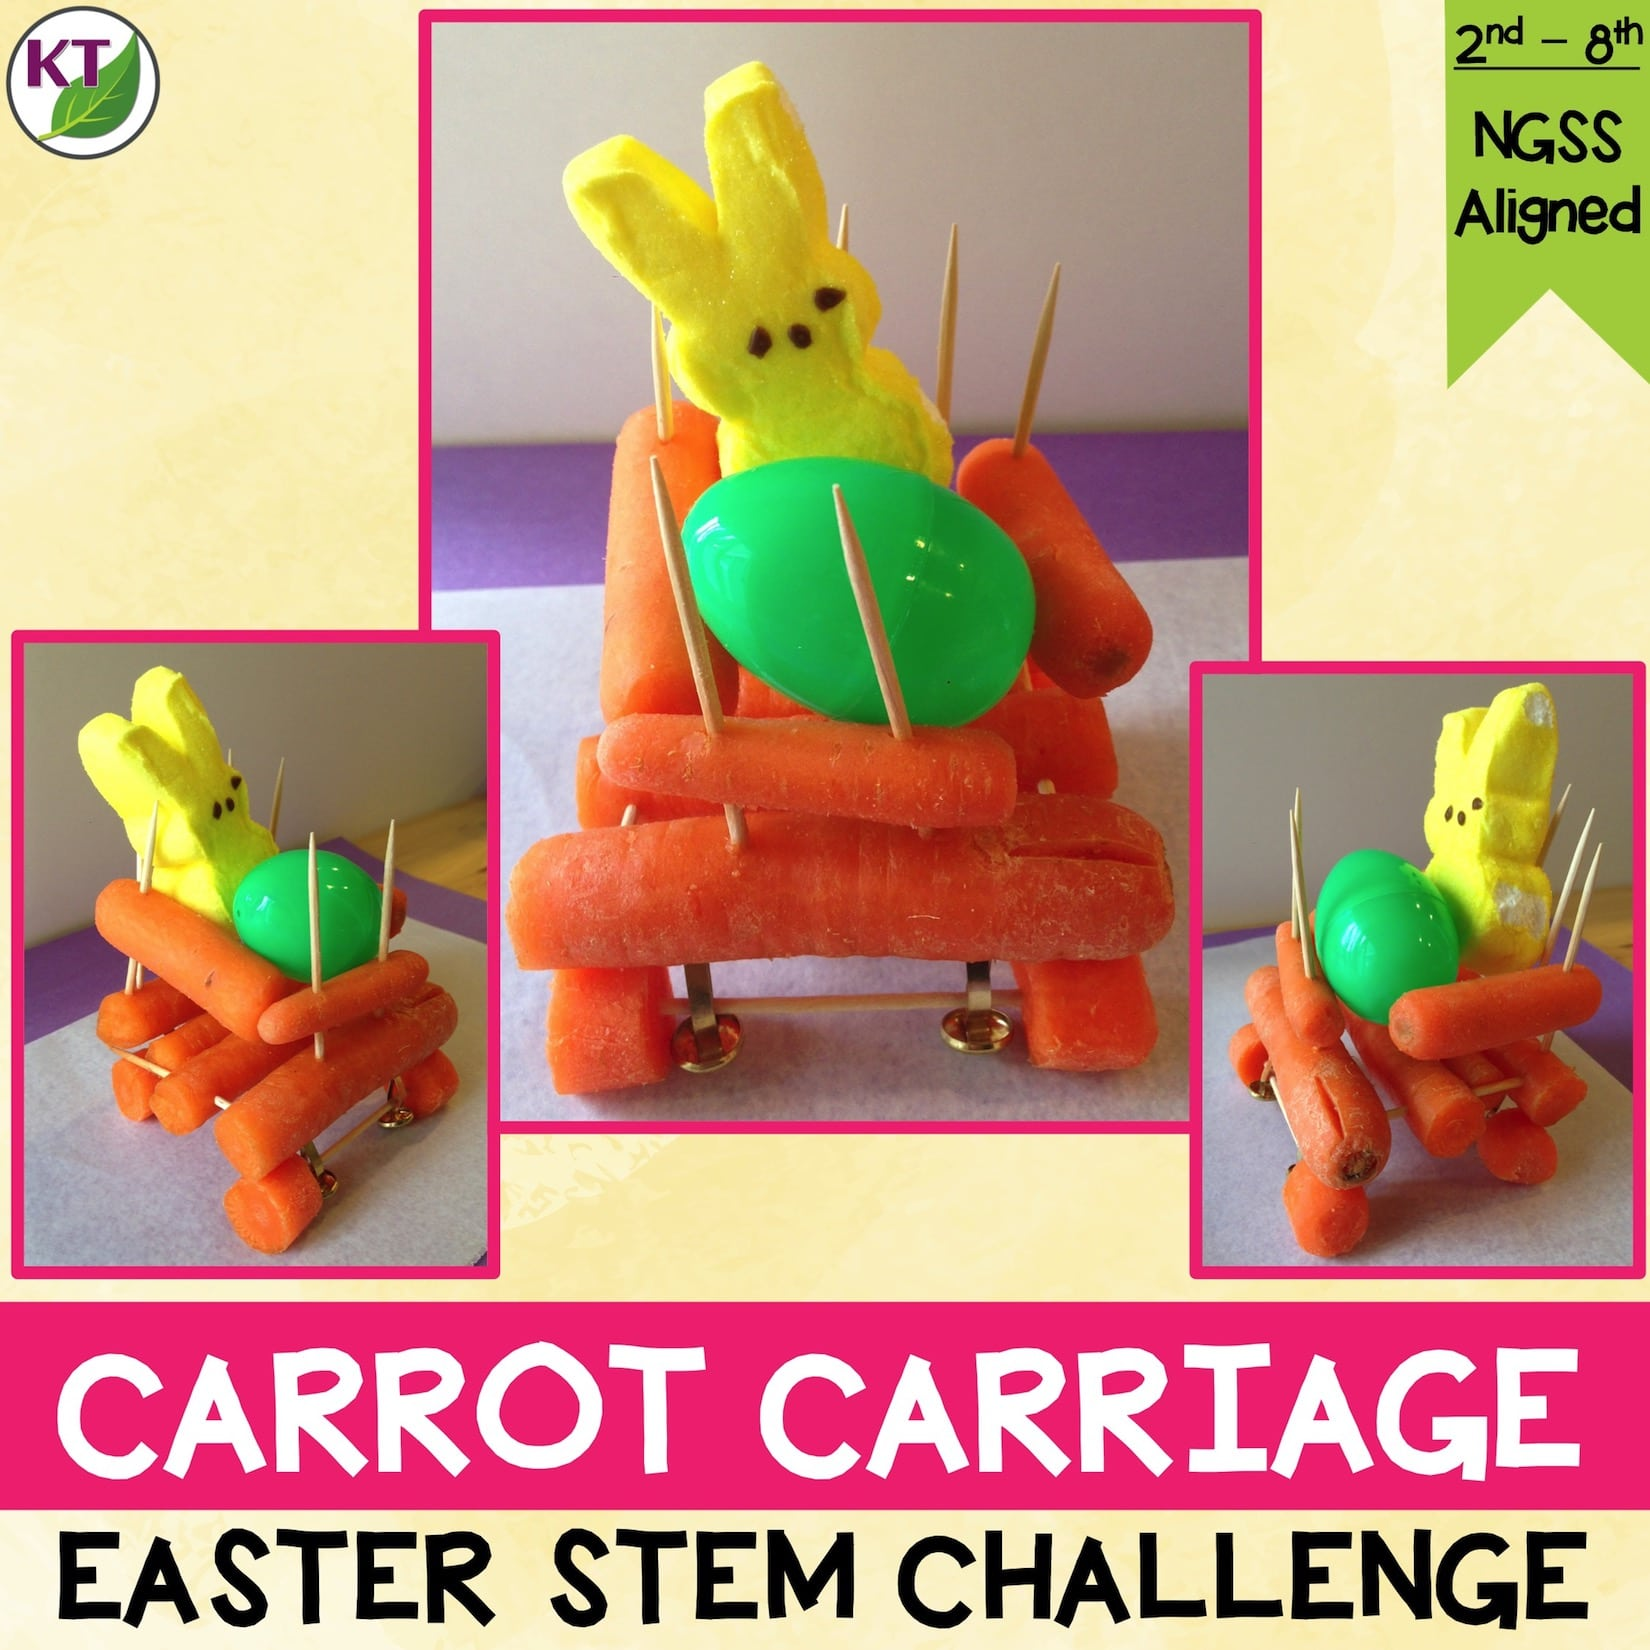 Carrot Carriage Easter Stem Challenge Stem Challenges